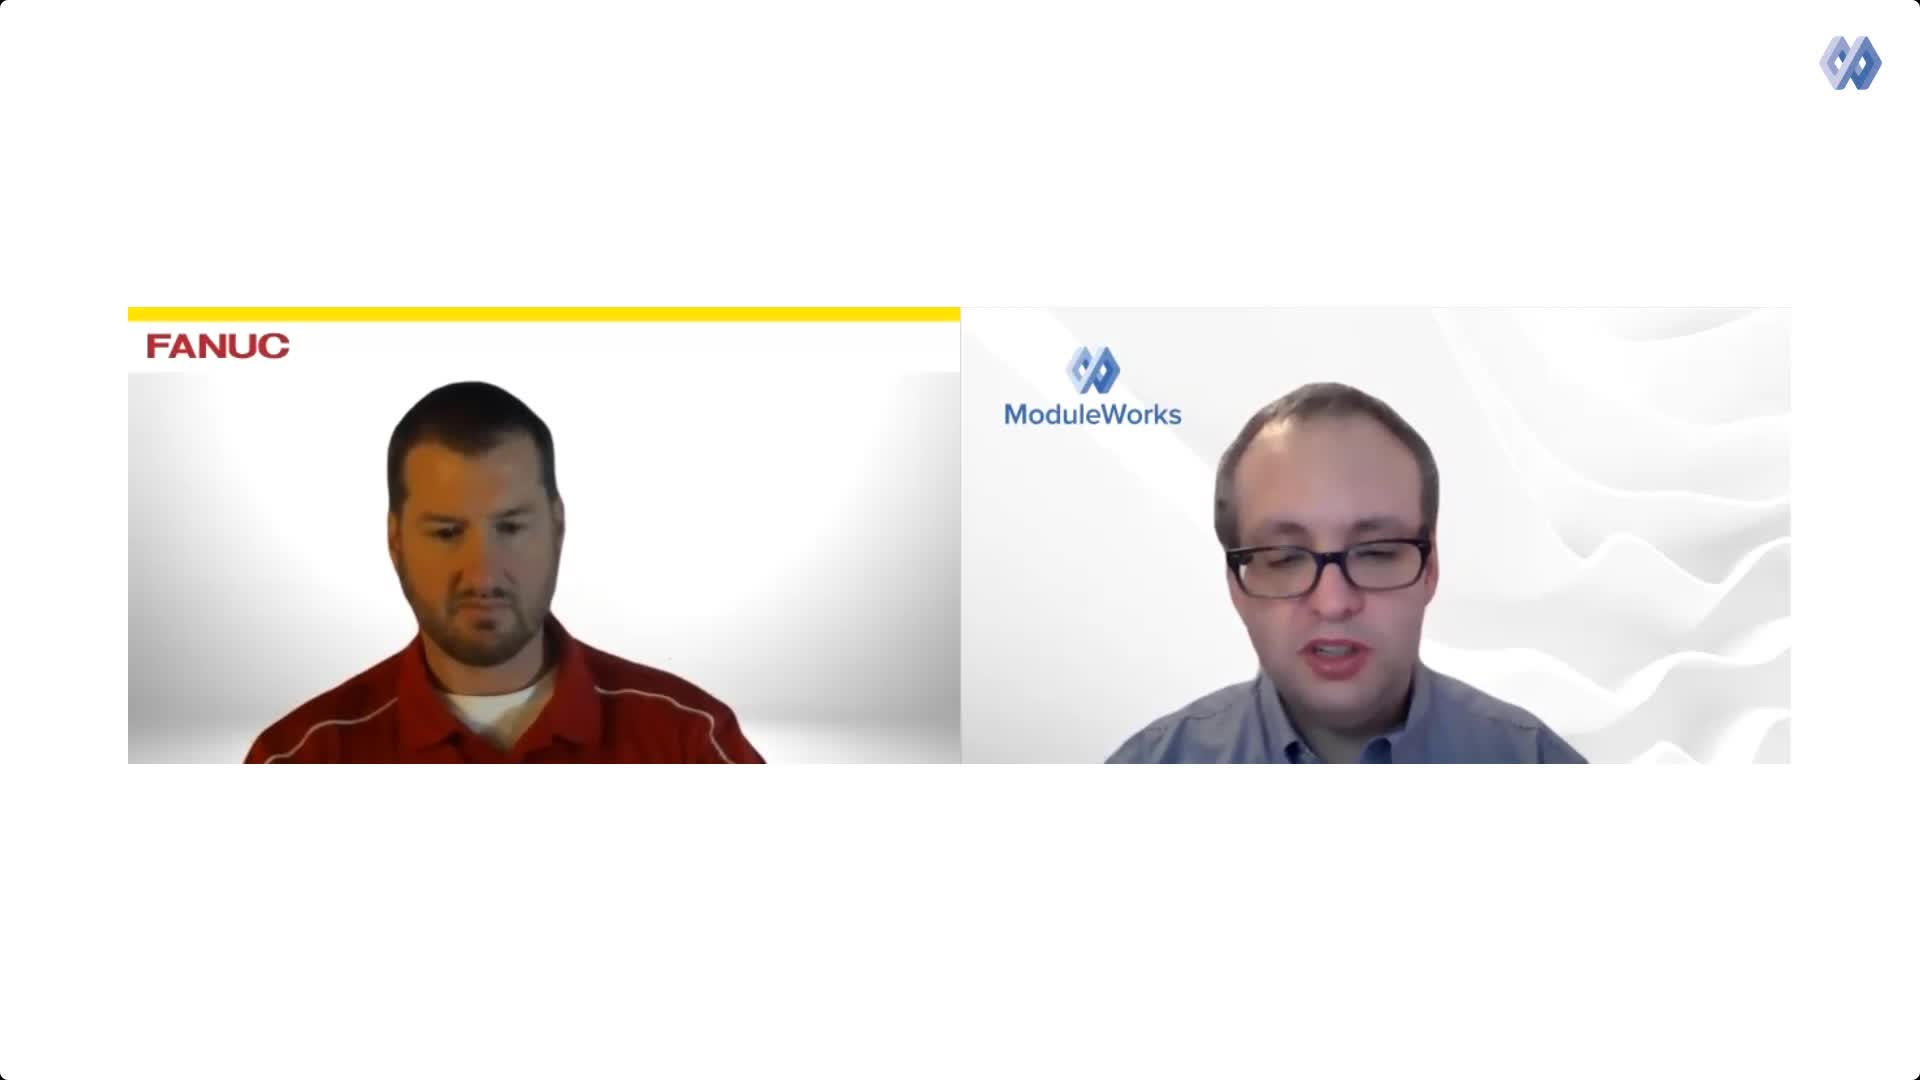 Don't miss the latest part of the #interview series with our partner @fanucamerica